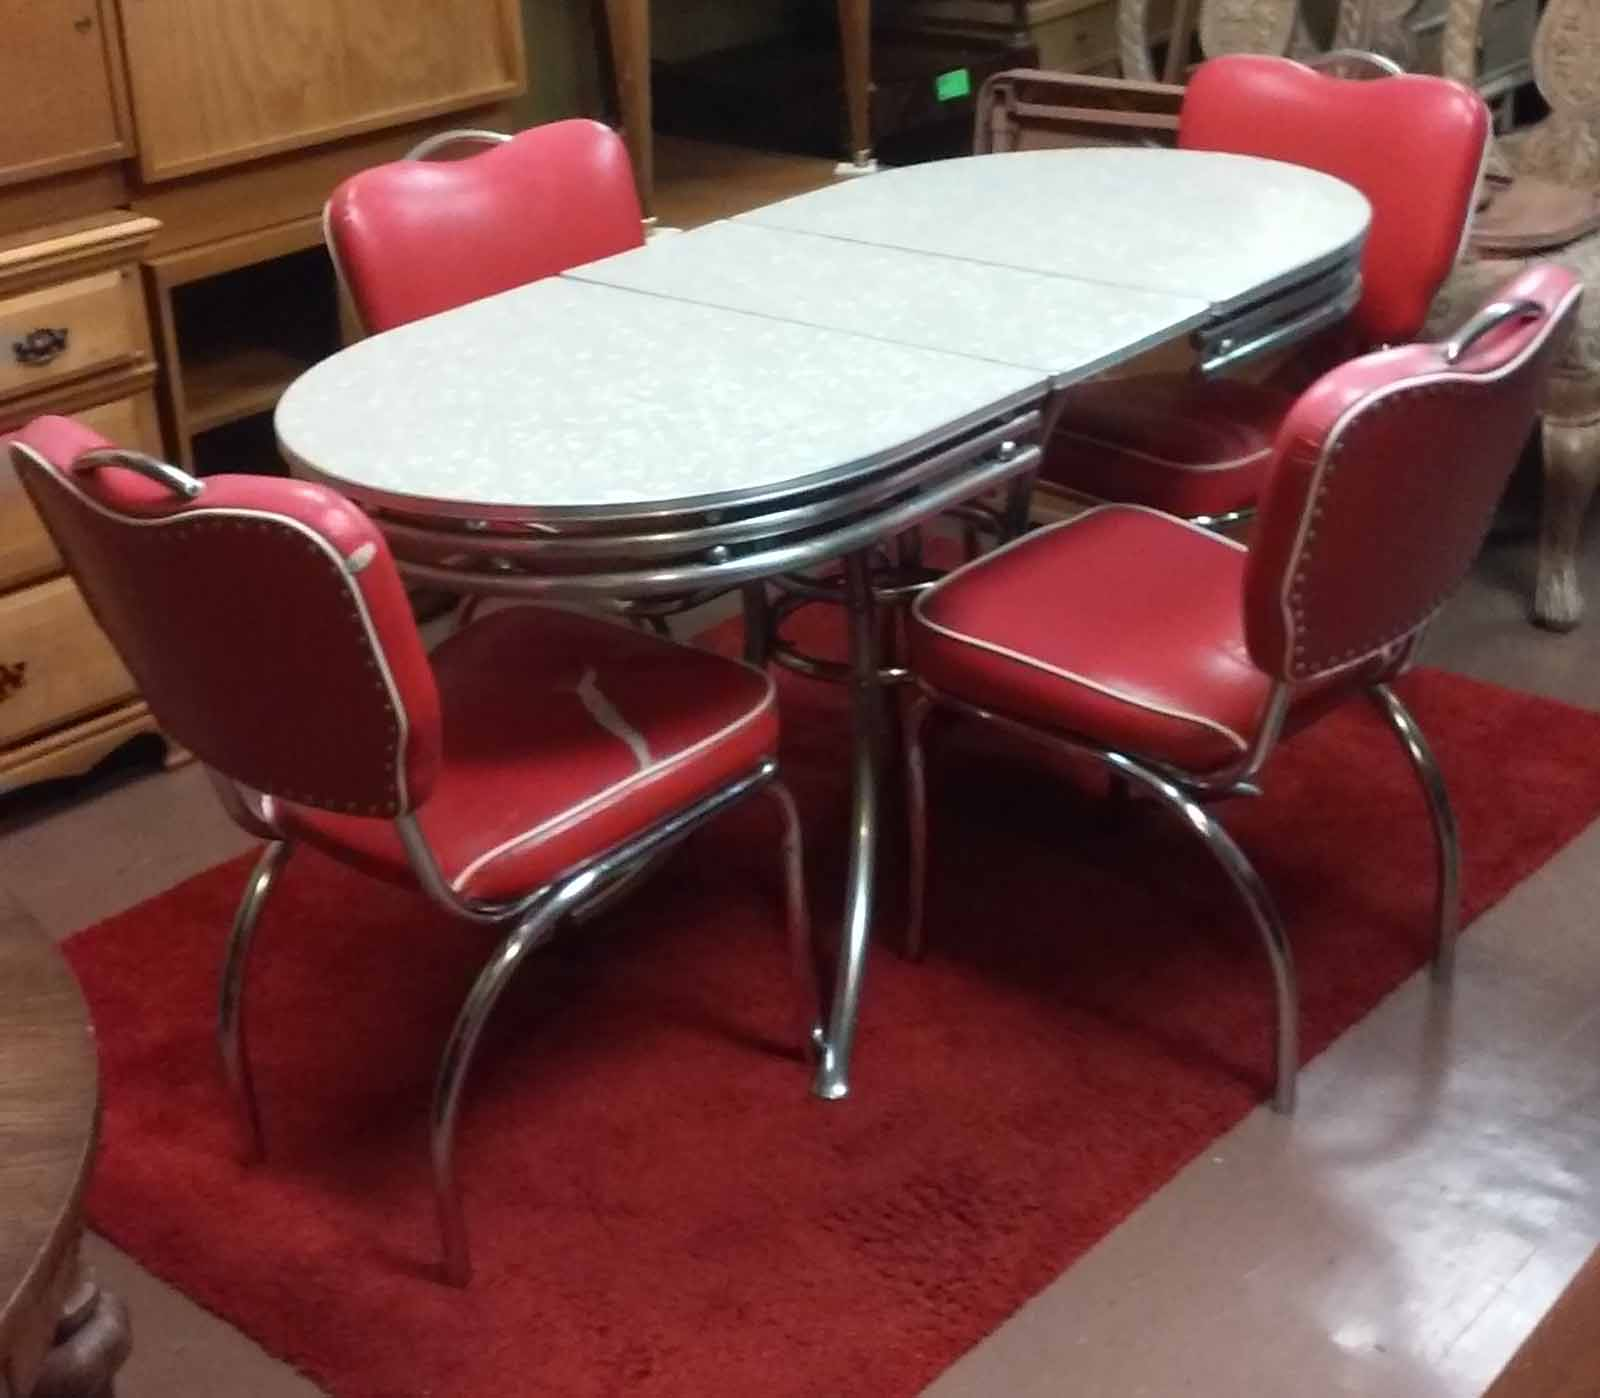 50s Table And Chairs Uhuru Furniture And Collectibles Sold 50 39s Style Chrome